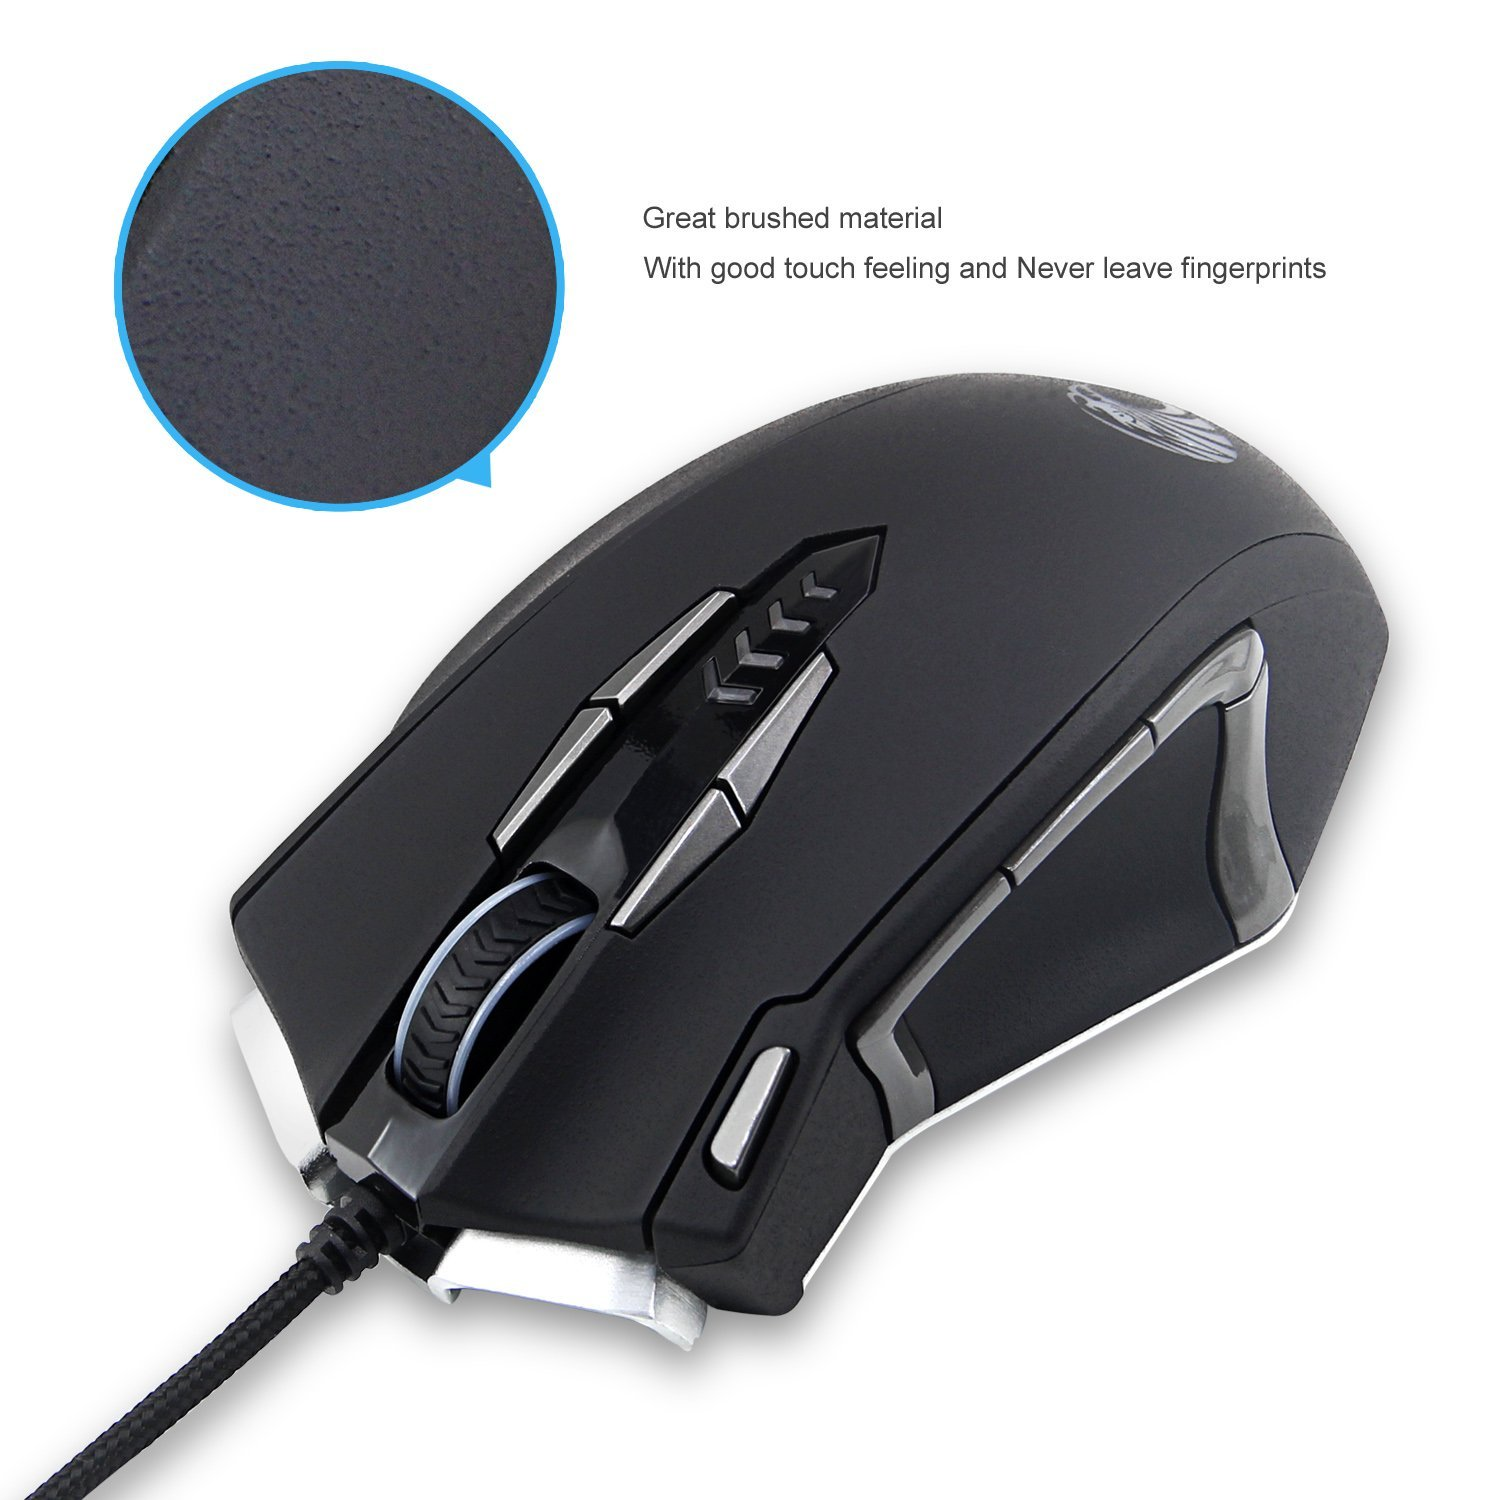 EUASOO Mouse Mice Z-7900 4000 DPI Metal Base MMO/FPS High Precision Optical Gaming Mouse